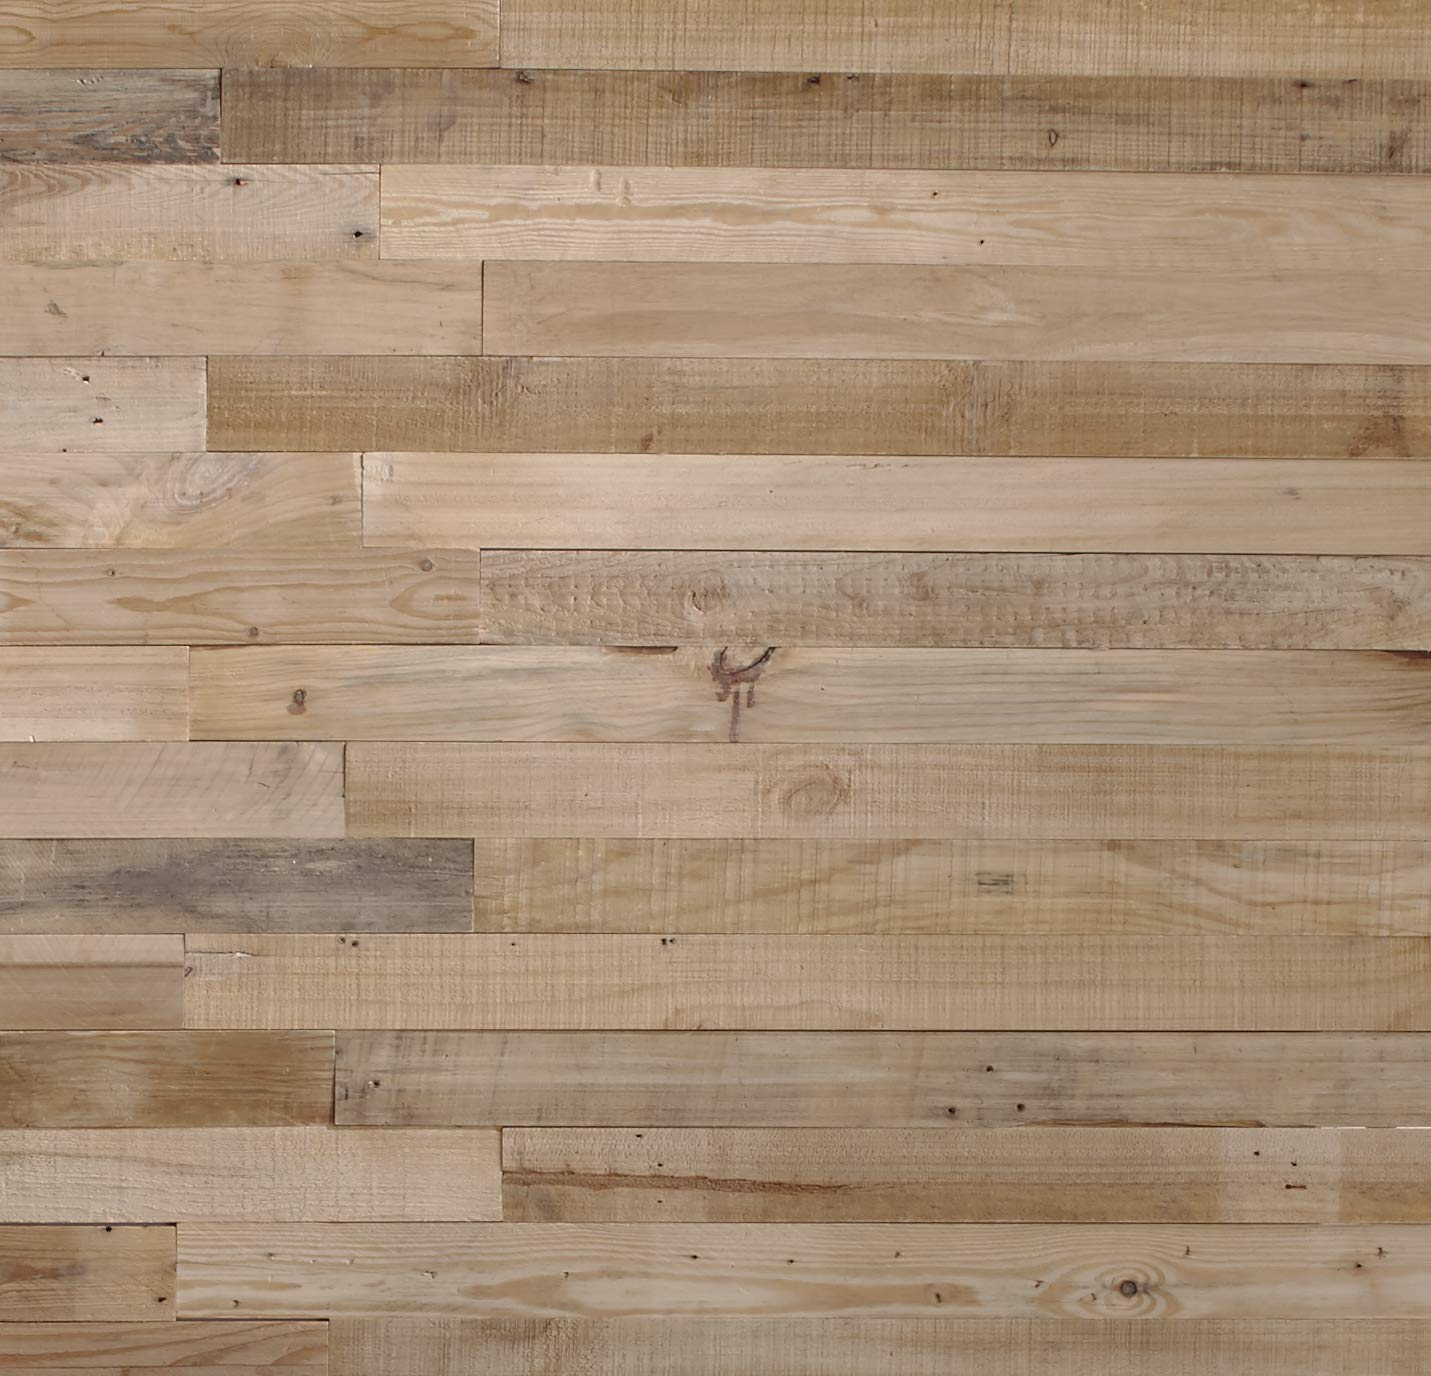 Timberwall - Reclaimed Collection - Planks - DIY Wood Wall Panels - Solid Wood Planks - Nails and Staples Application - 7.9 Sq Ft